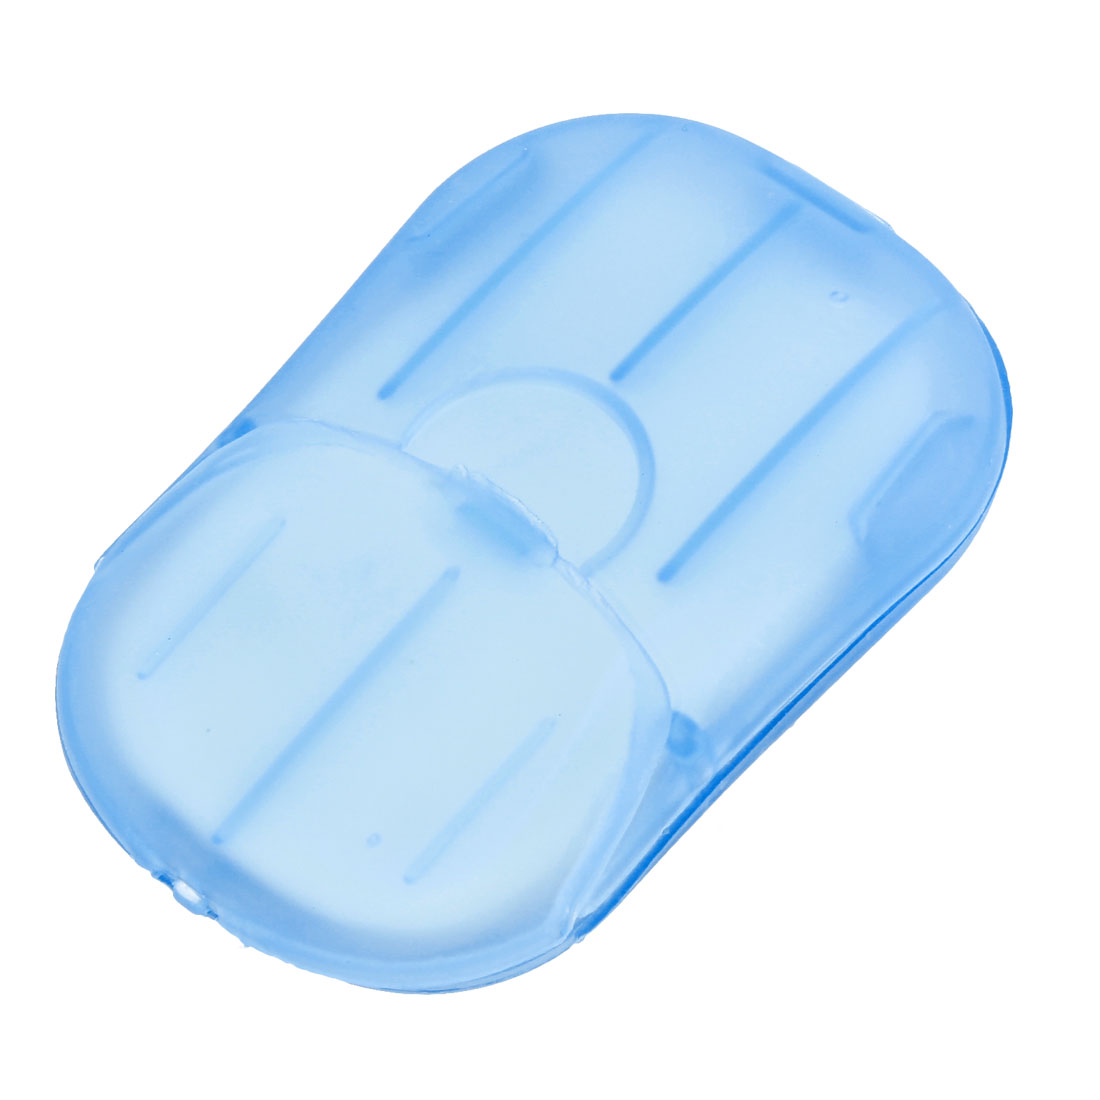 Bathing Blue Plastic Case Holder Fragrant White Paper Soap Sheets